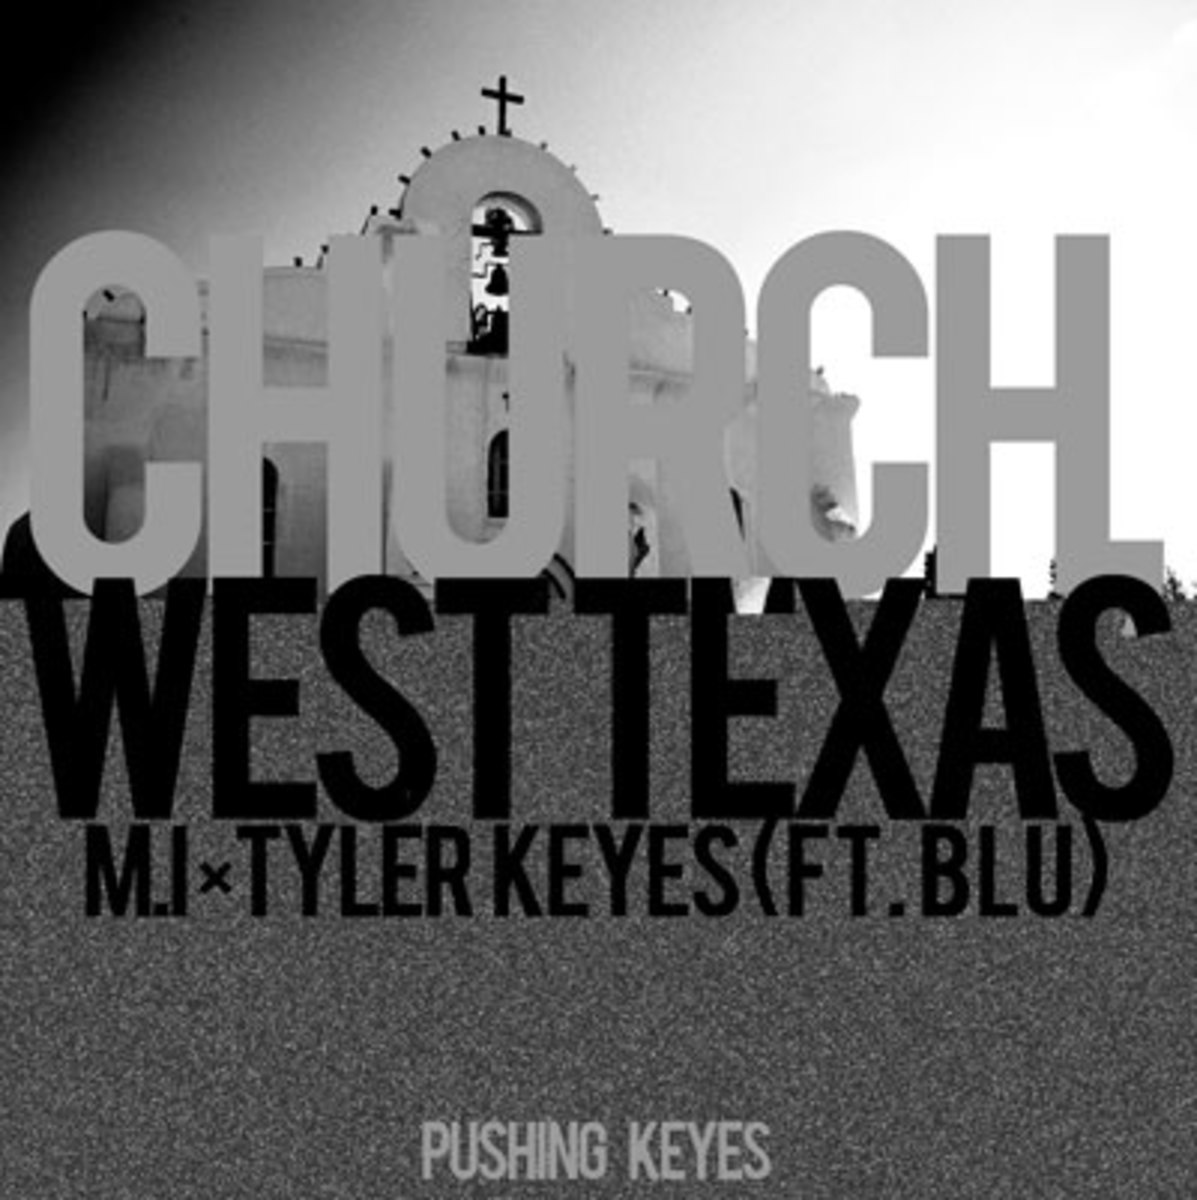 mi-churchwesttx.jpg